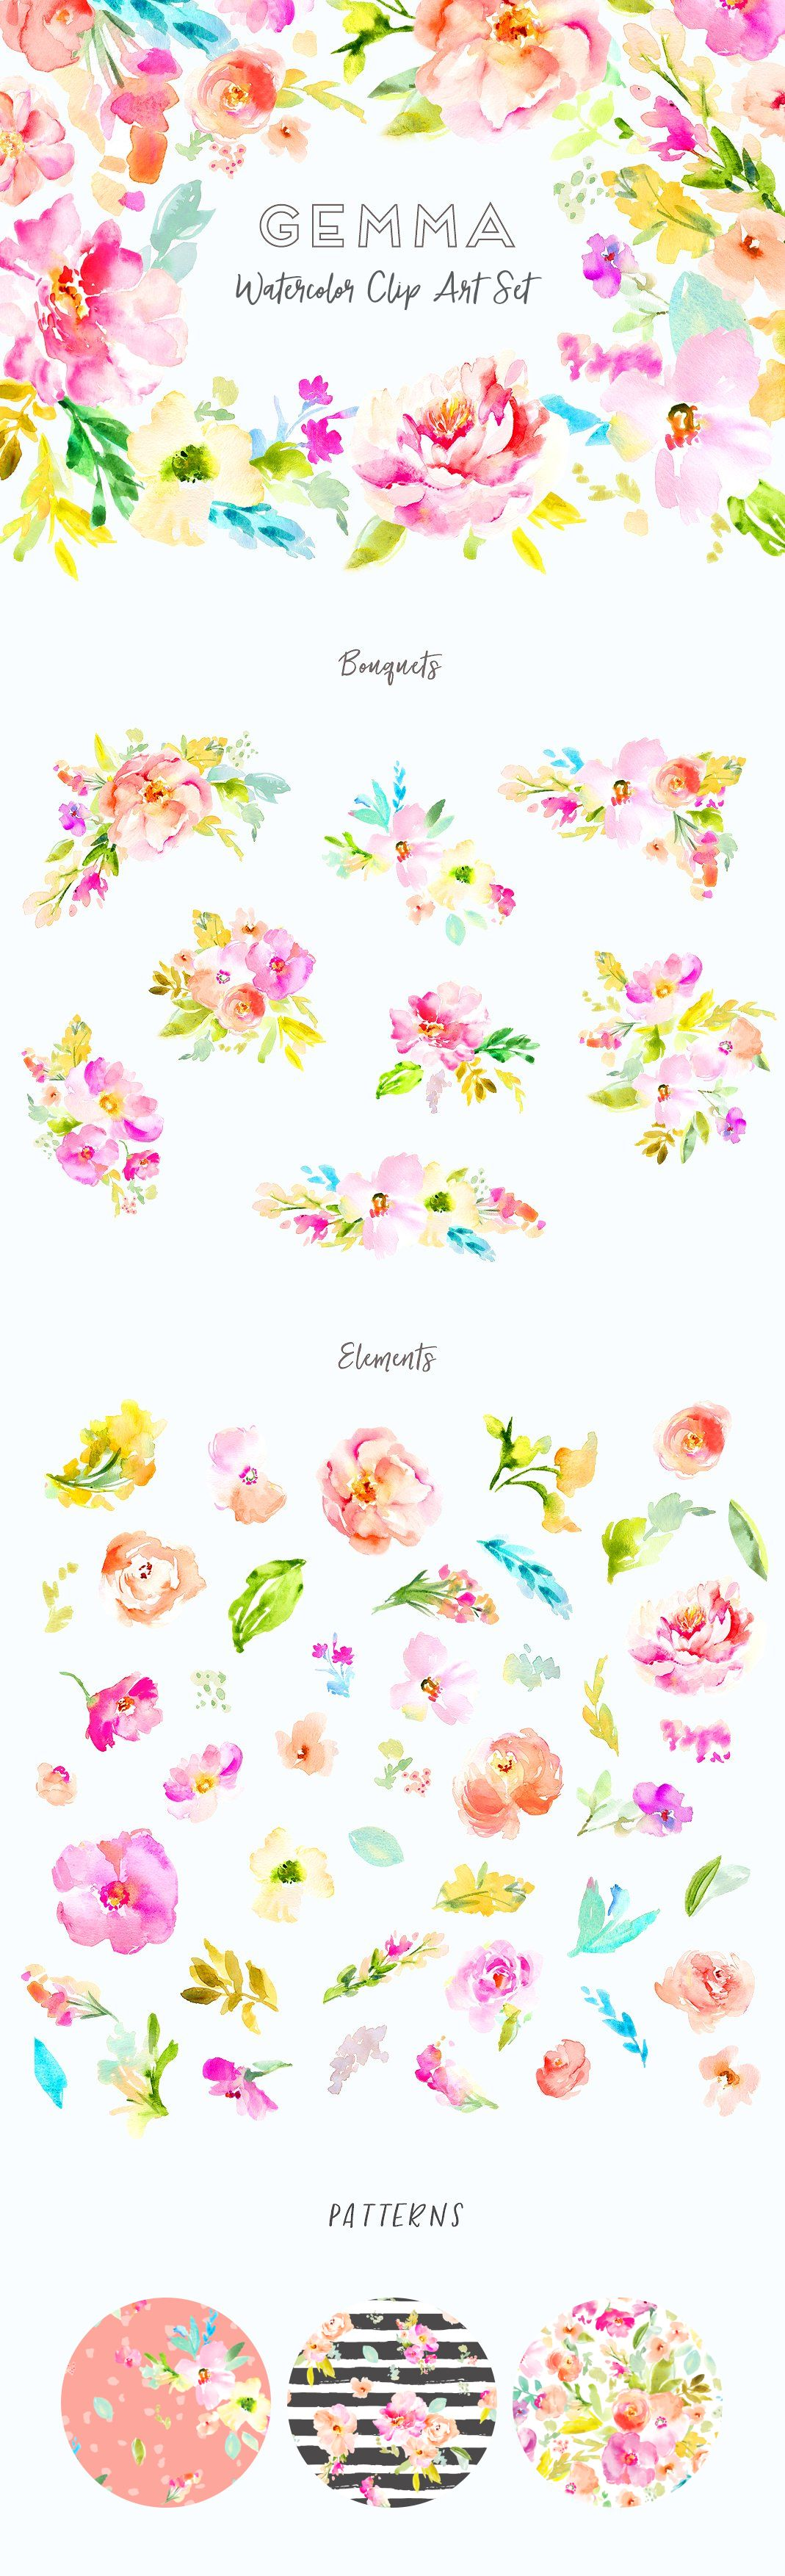 This Adorable Watercolor Floral Artwork is Ready for Your DIY Projects. This Watercolor Clip Art Set includes Various Floral Illustration Clip Art Elements. angiemakes.com